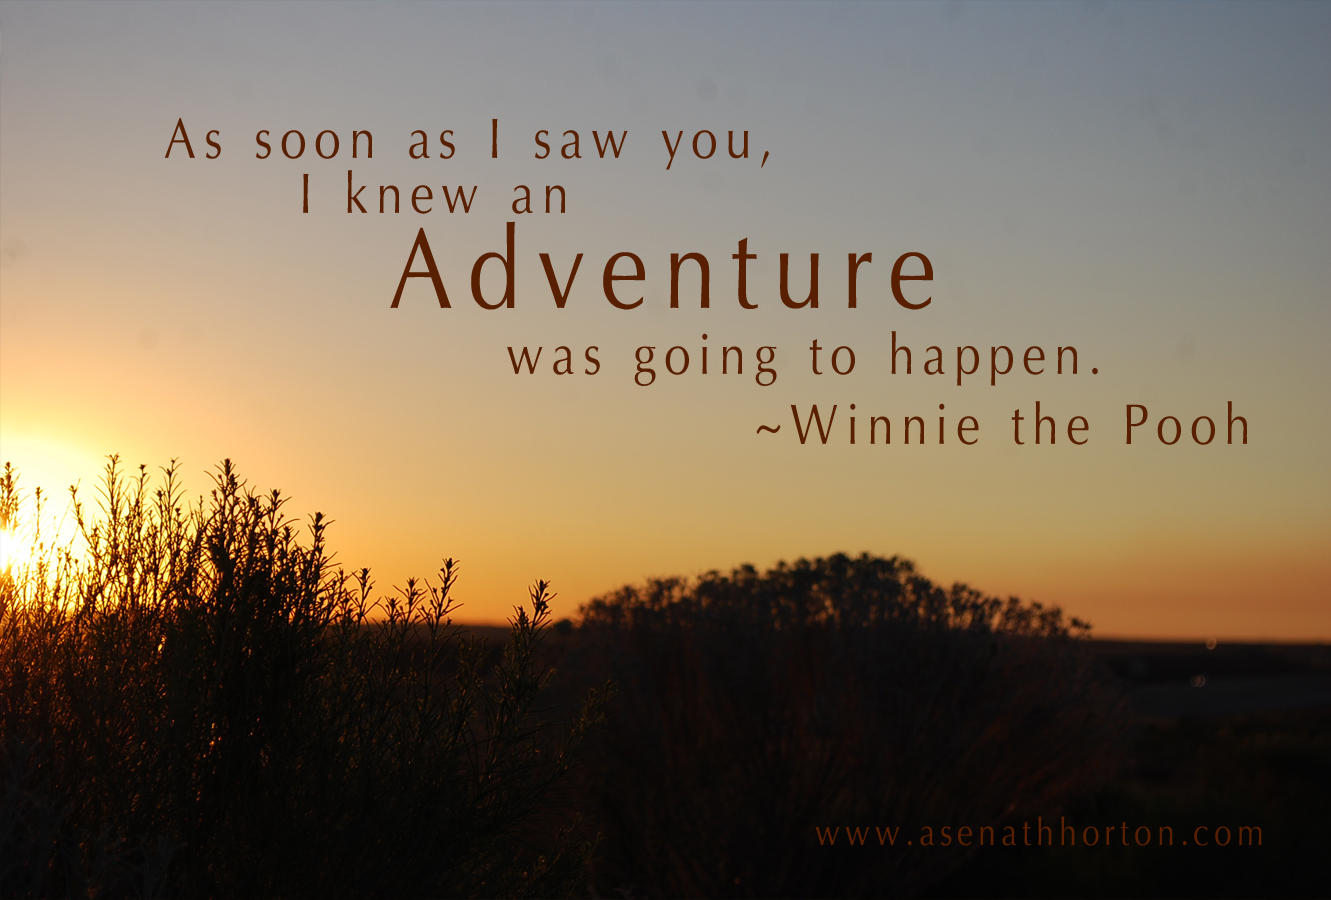 60 Best Adventure Quotes And Sayings: Adventure Quotes. QuotesGram